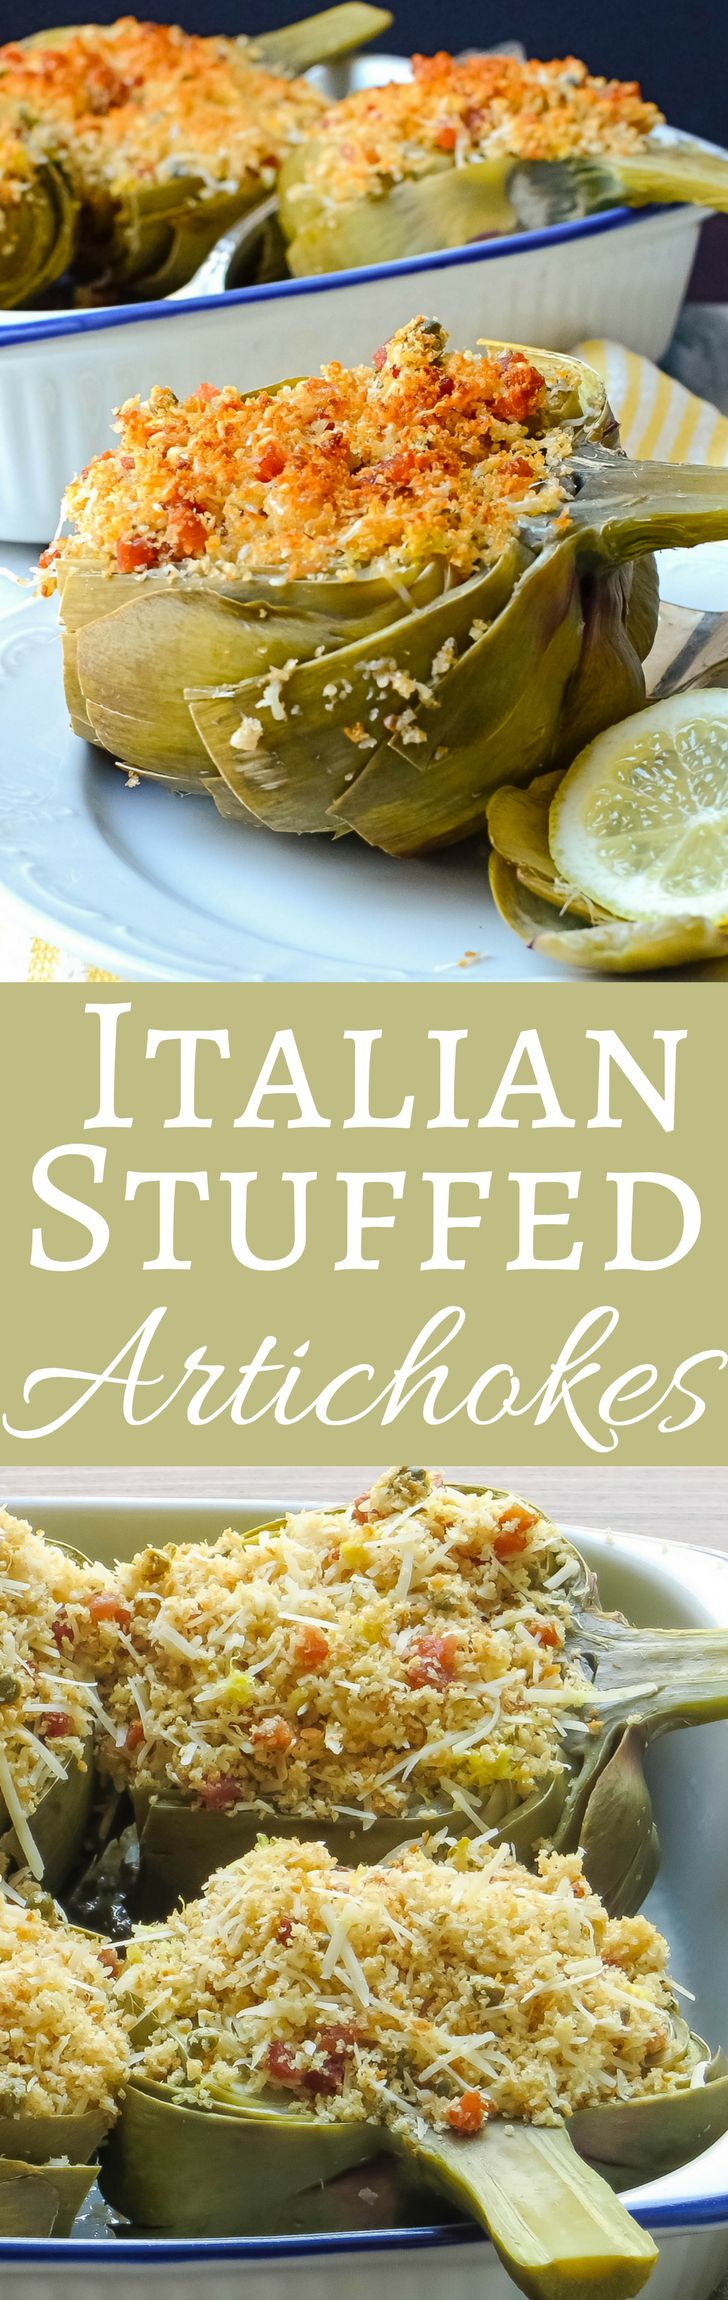 Artichokes are simple to prepare, once you know how. This easy recipe takes it step by step!